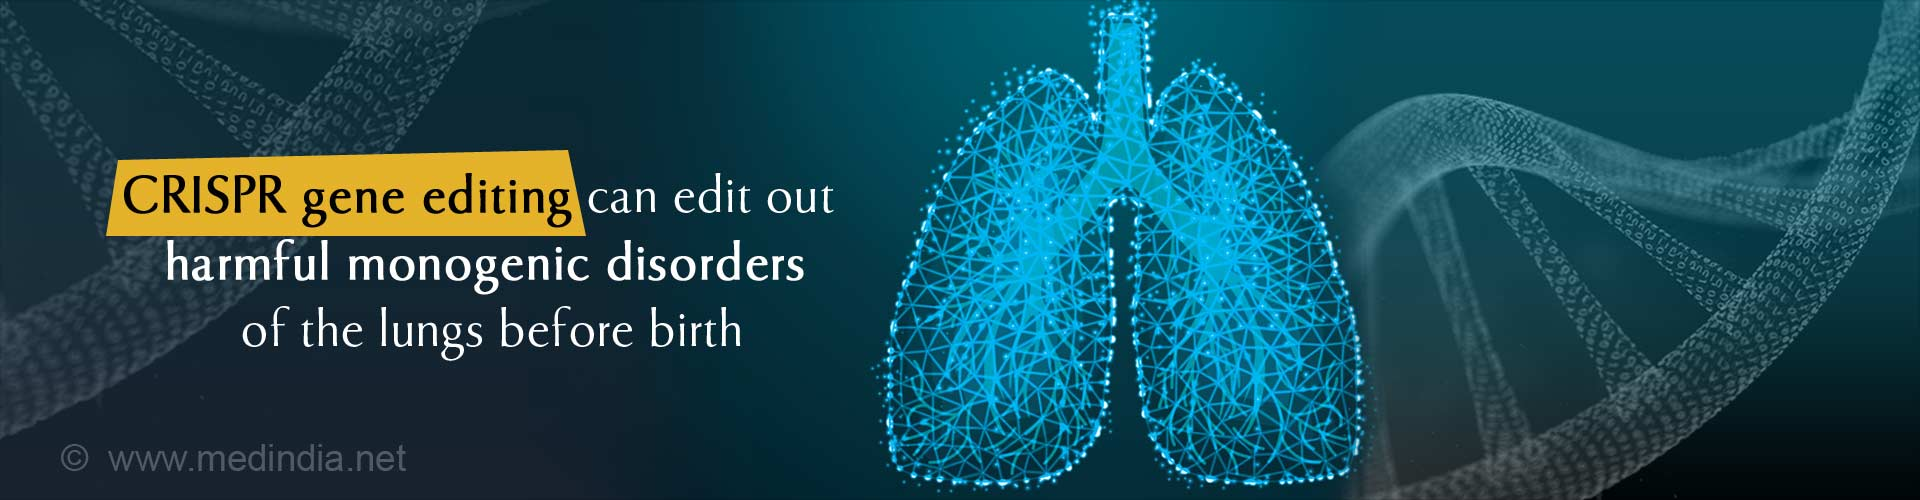 CRISPR Gene Editing can Treat Deadly Lung Diseases Before Birth